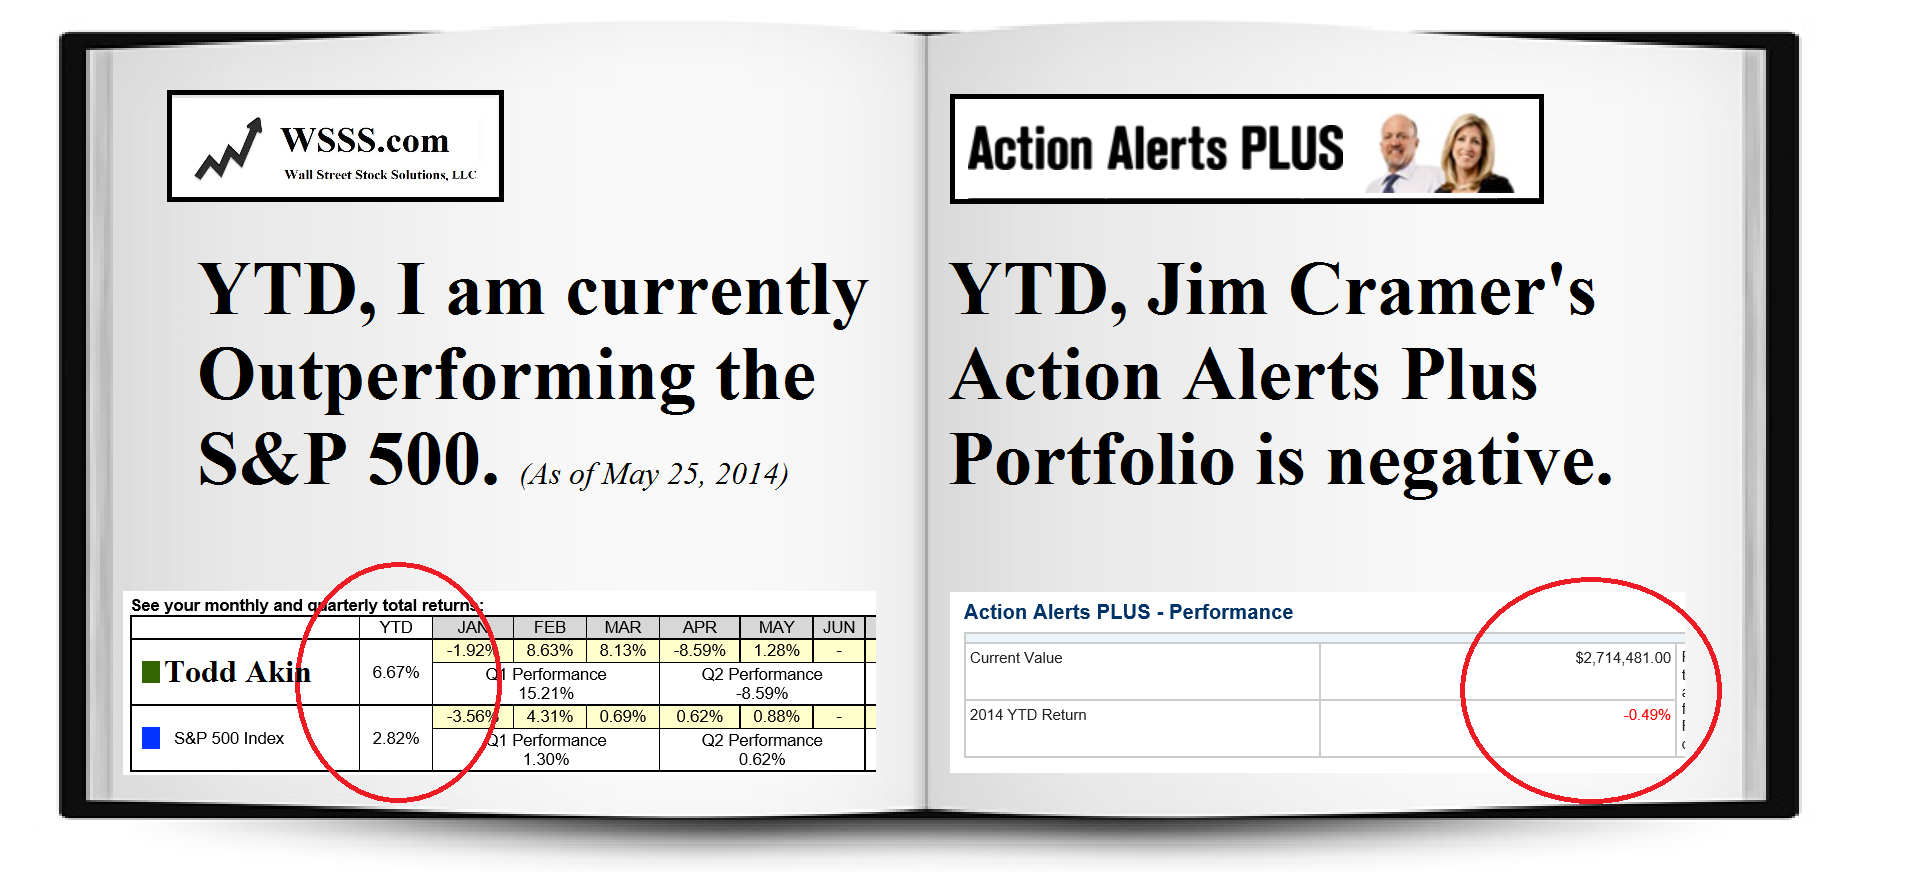 Todd Akin vs Jim Cramer may 25, 2014